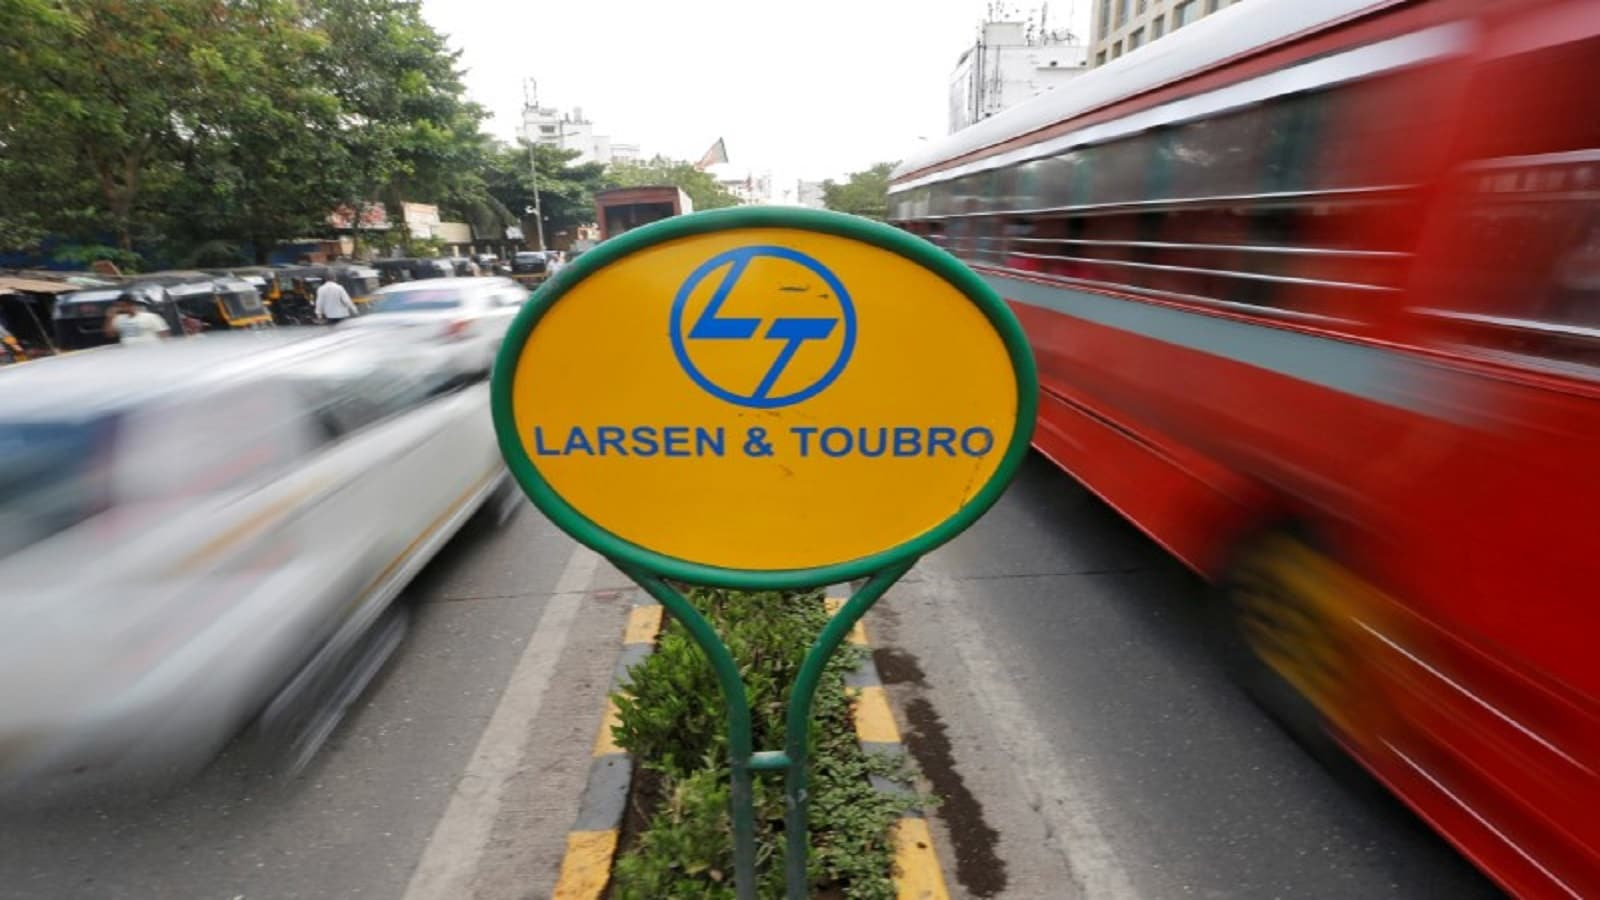 Engineering major Larsen & Toubro (L&T) on Saturday said market regulator Sebi has denied permission for its Rs 9,000 crore share buyback offer. In a regulatory filing to stock exchanges, L&T said the Securities and Exchange Board of India (Sebi) has asked it not to proceed with the buyback. (Caption credits: PTI/Picture credits: Reuters)